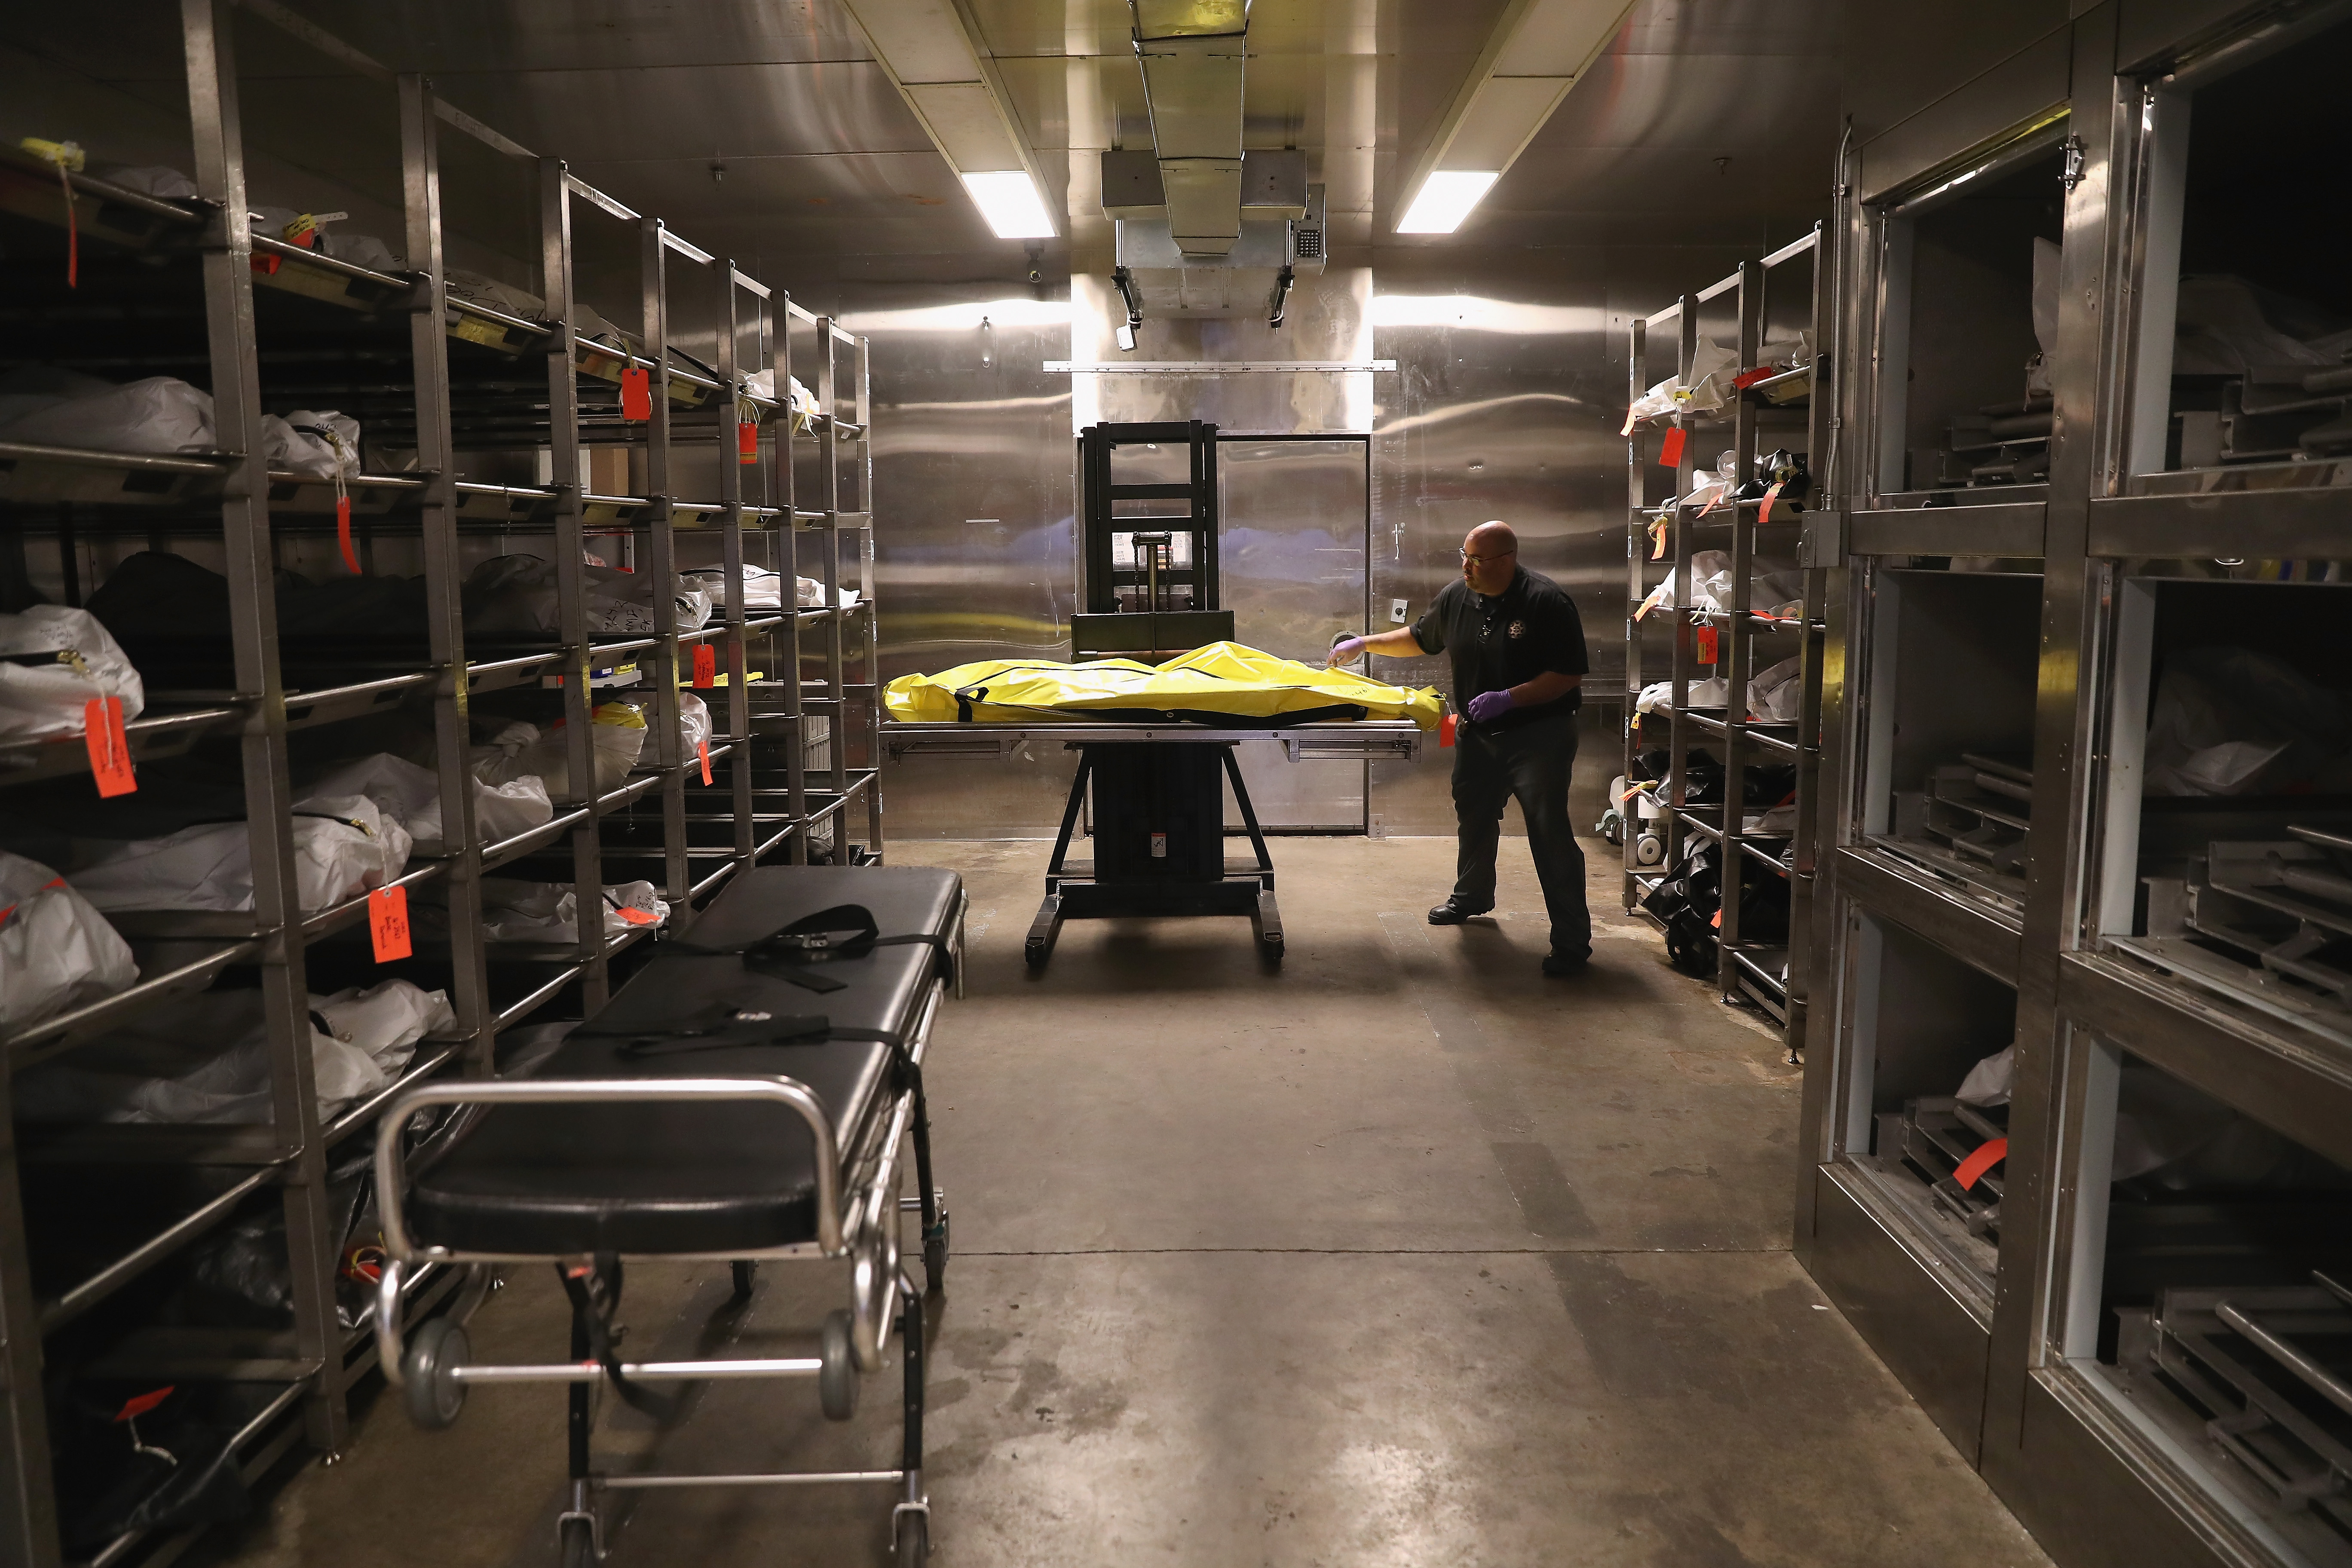 TUCSON, ARIZONA - SEPTEMBER 29: Death investigator Trevis Hairston moves a corpse in the morgue of the Pima County Medical Examiner on September 29, 2016 in Tucson, Arizona. Hundreds of undocumented immigrants die every year, most from dehydration, in the desert while crossing illegally from Mexico into the United States. Forensic anthropologists study personal effects and bodily remains in an effort to identify the bodies and reunite them with loved ones. (Photo by John Moore/Getty Images)